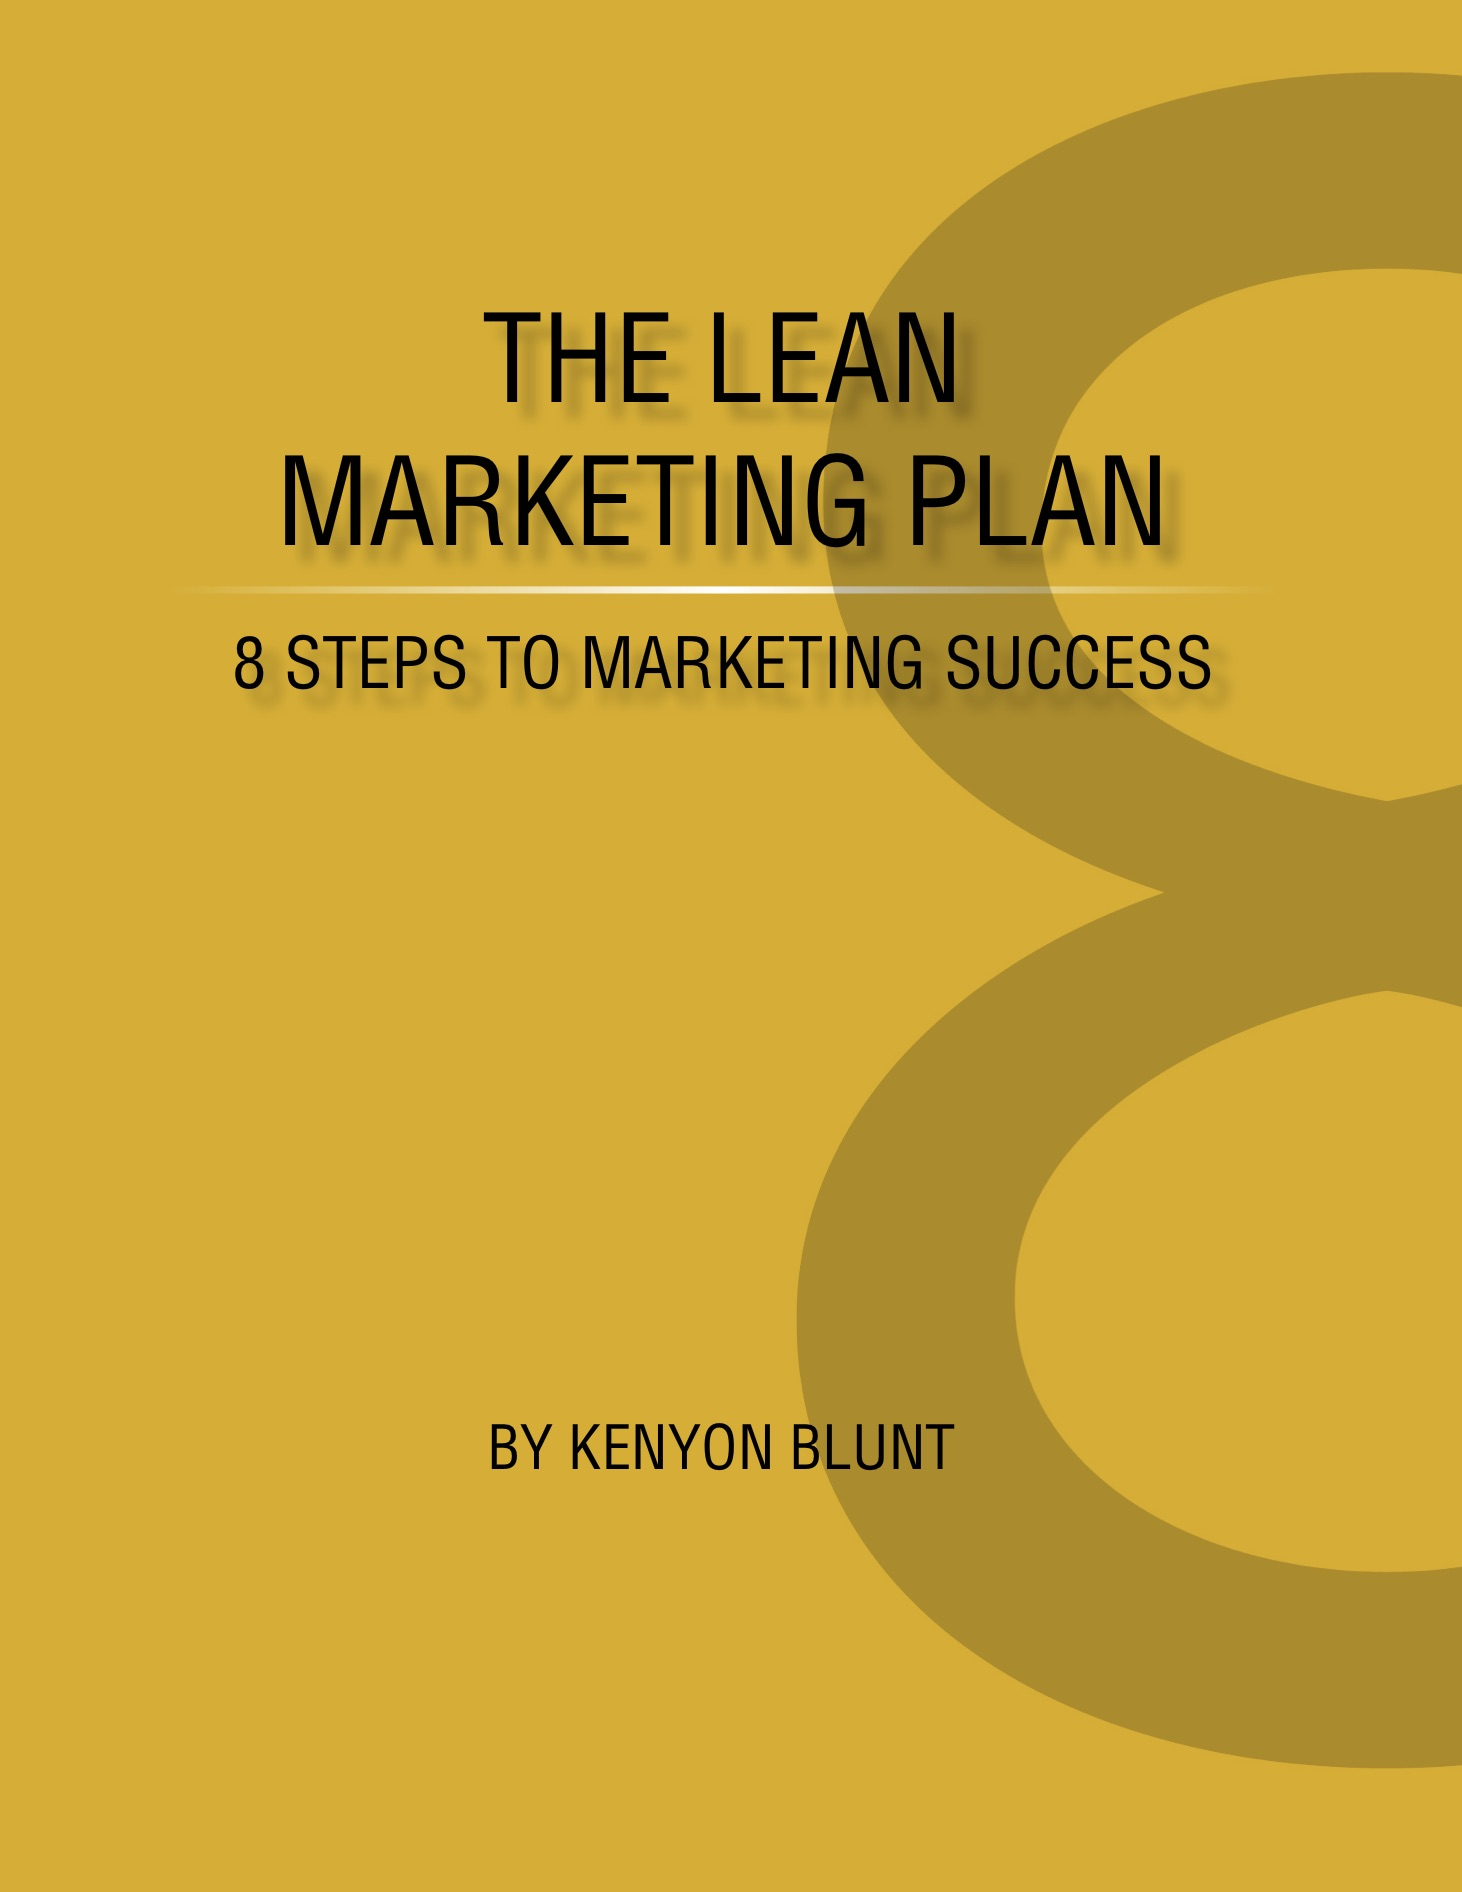 Book cover of The Lean Marketing Plan: 8 Steps to Marketing Success by Kenyon Blunt.